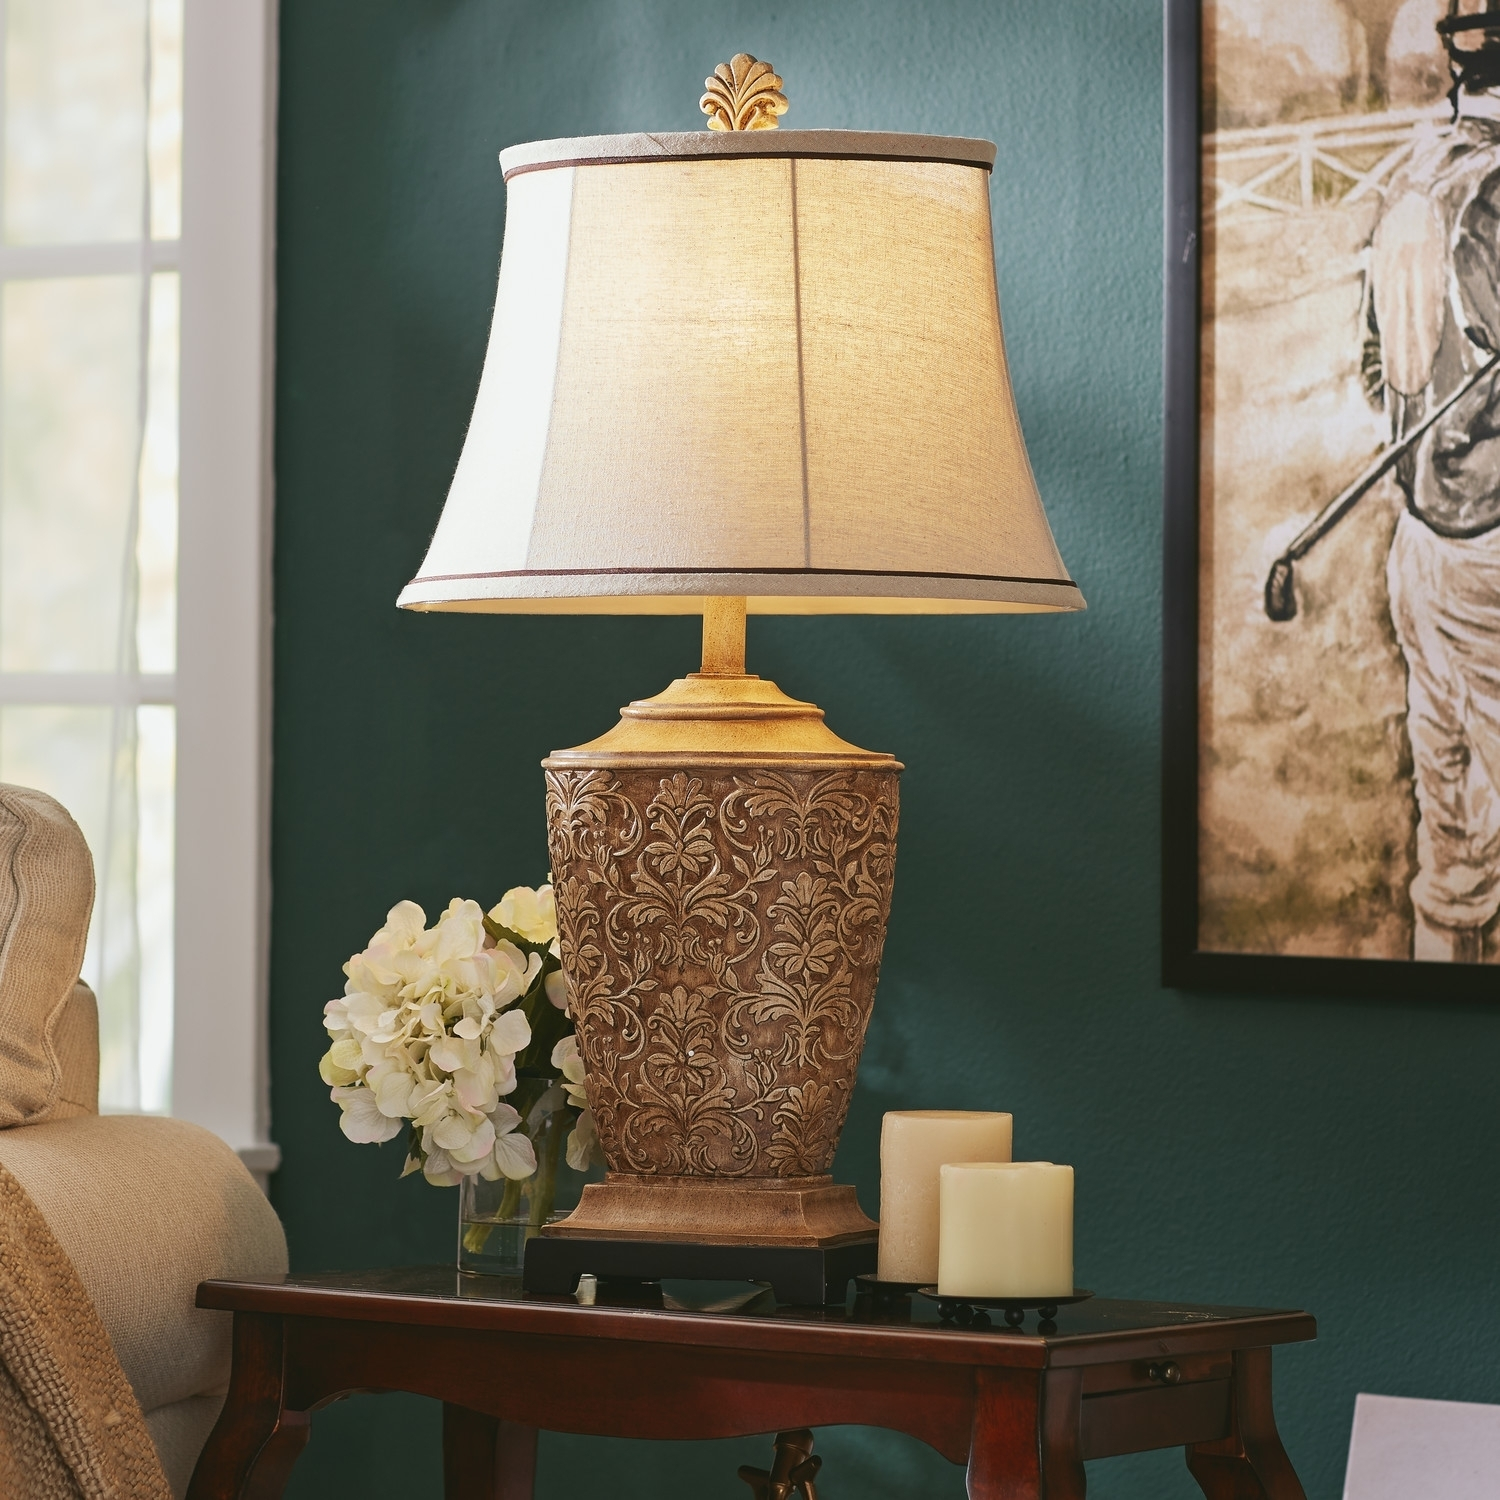 Side Table Lamps For Living Room – Living Room Decorating Design Throughout Living Room Table Reading Lamps (#12 of 15)